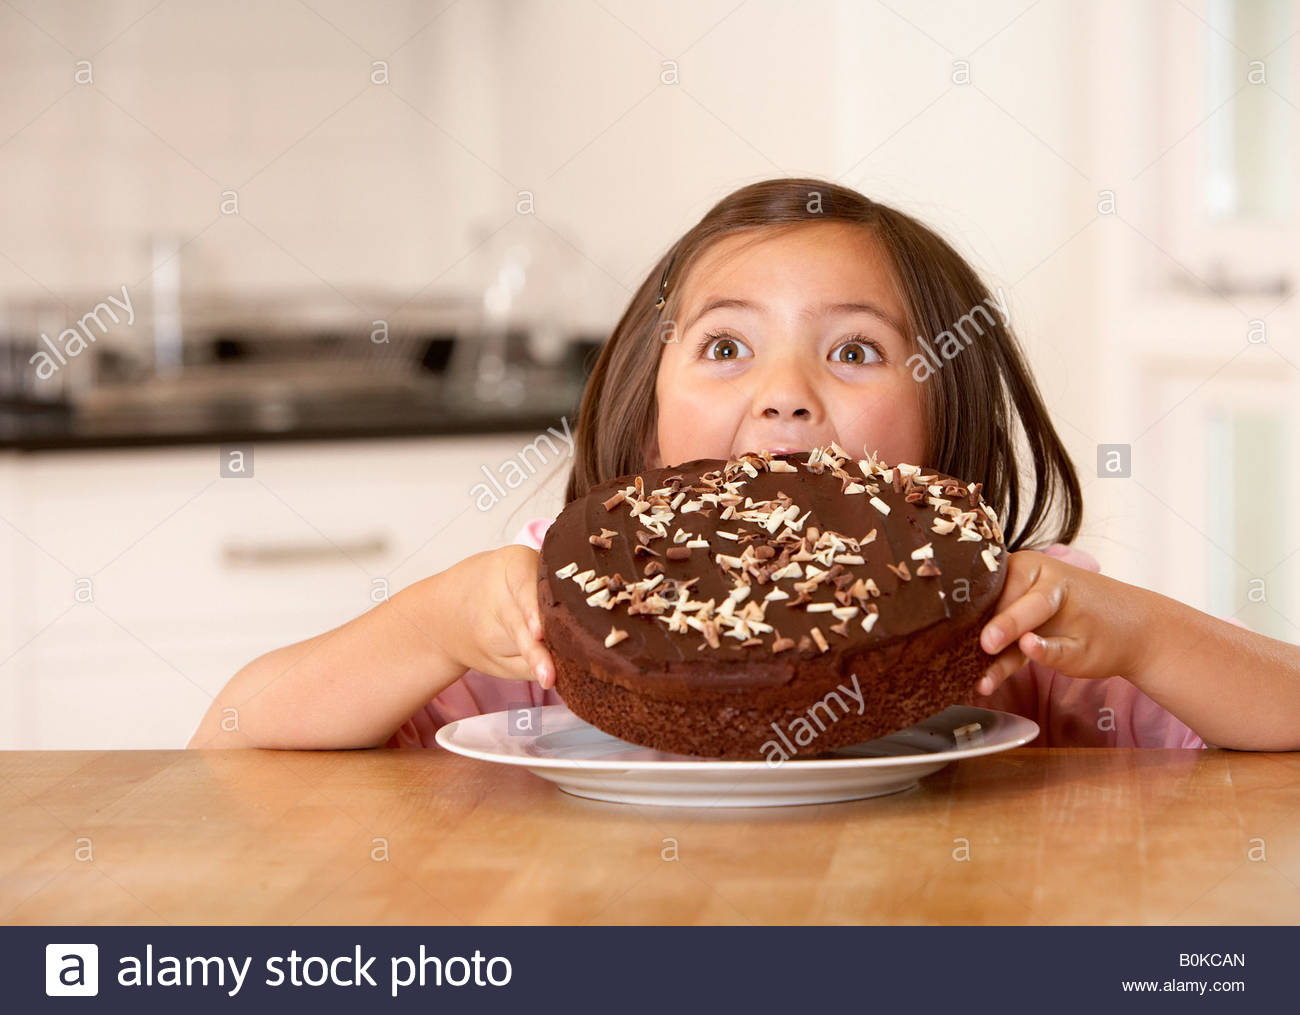 Boy Eating Chocolate Cake